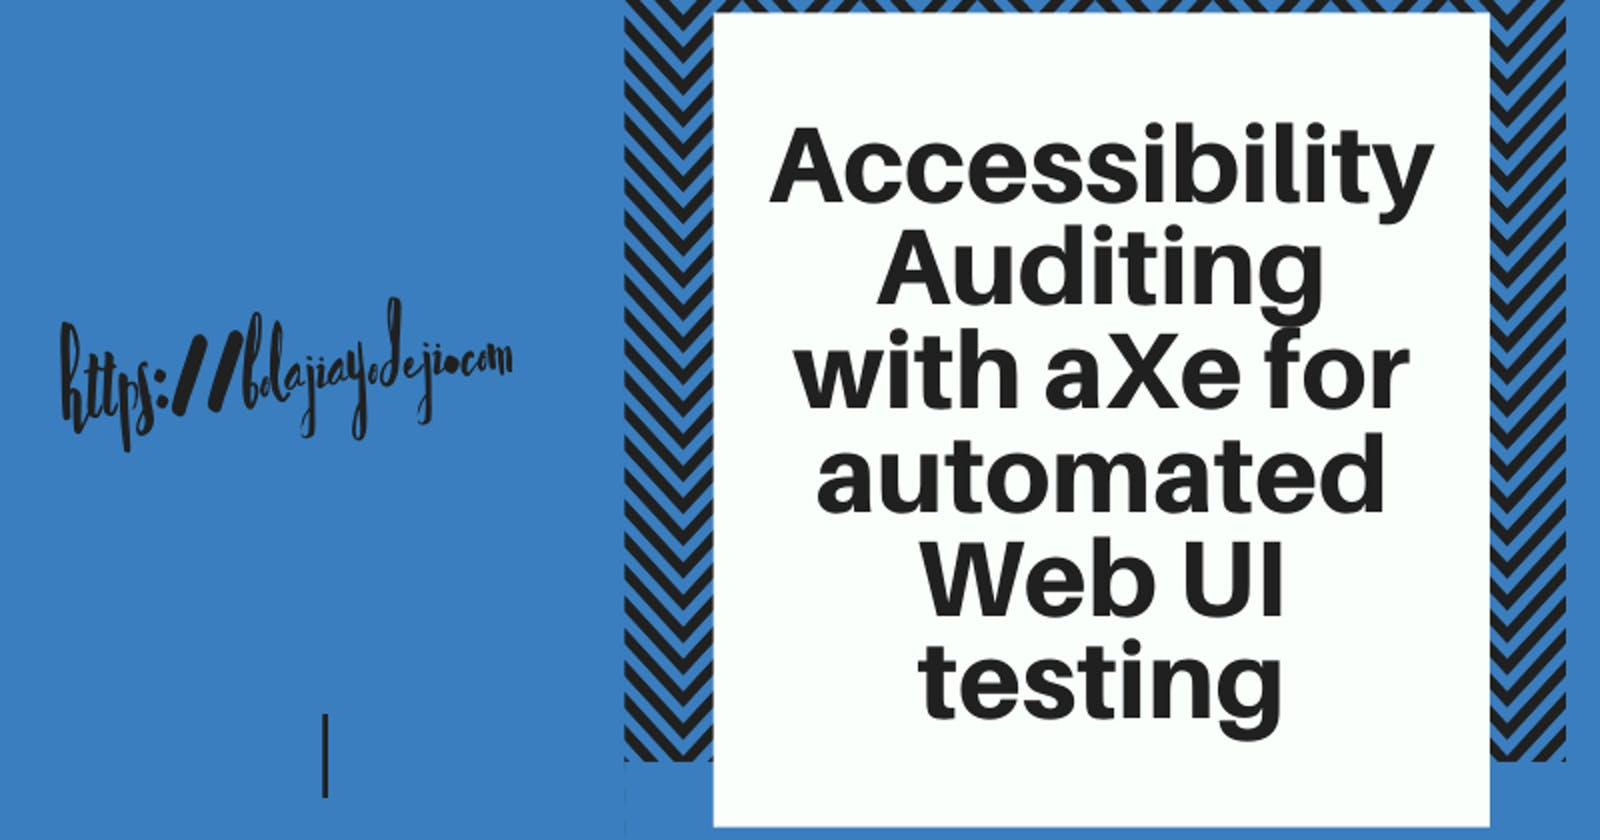 Accessibility Auditing with Axe for automated Web UI testing